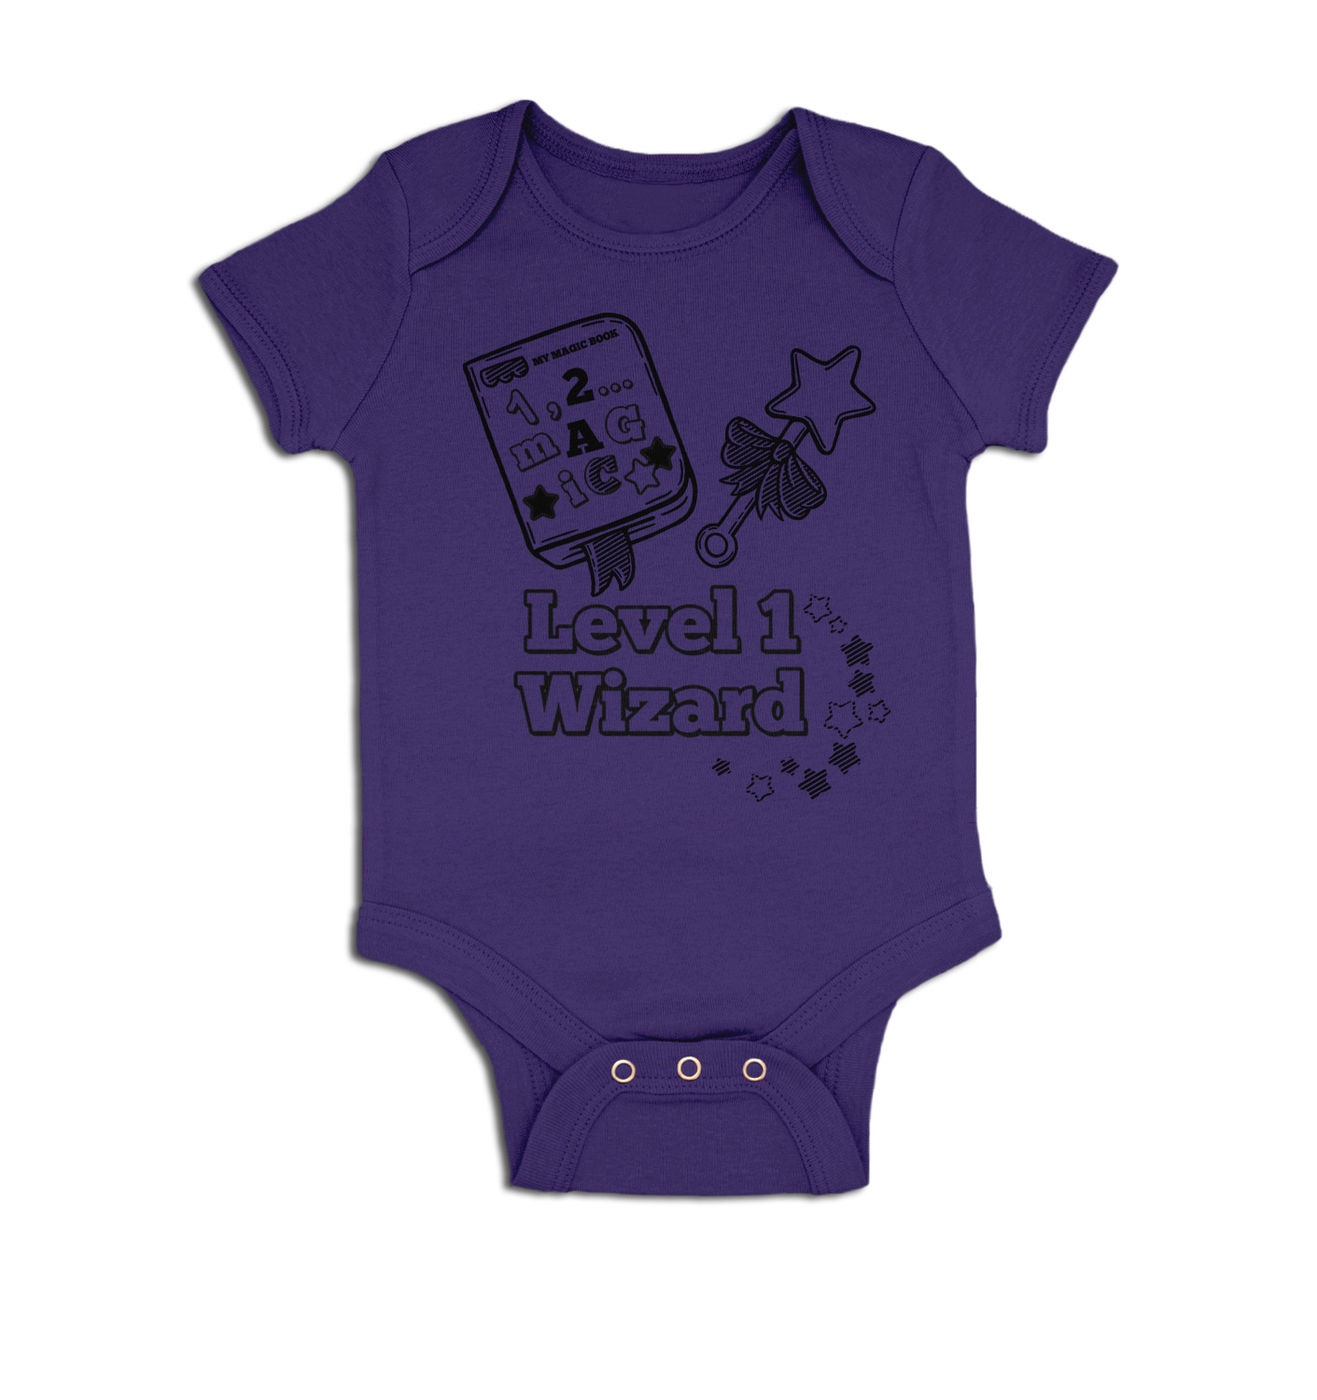 Level 1 Wizard baby grow by Something Geeky